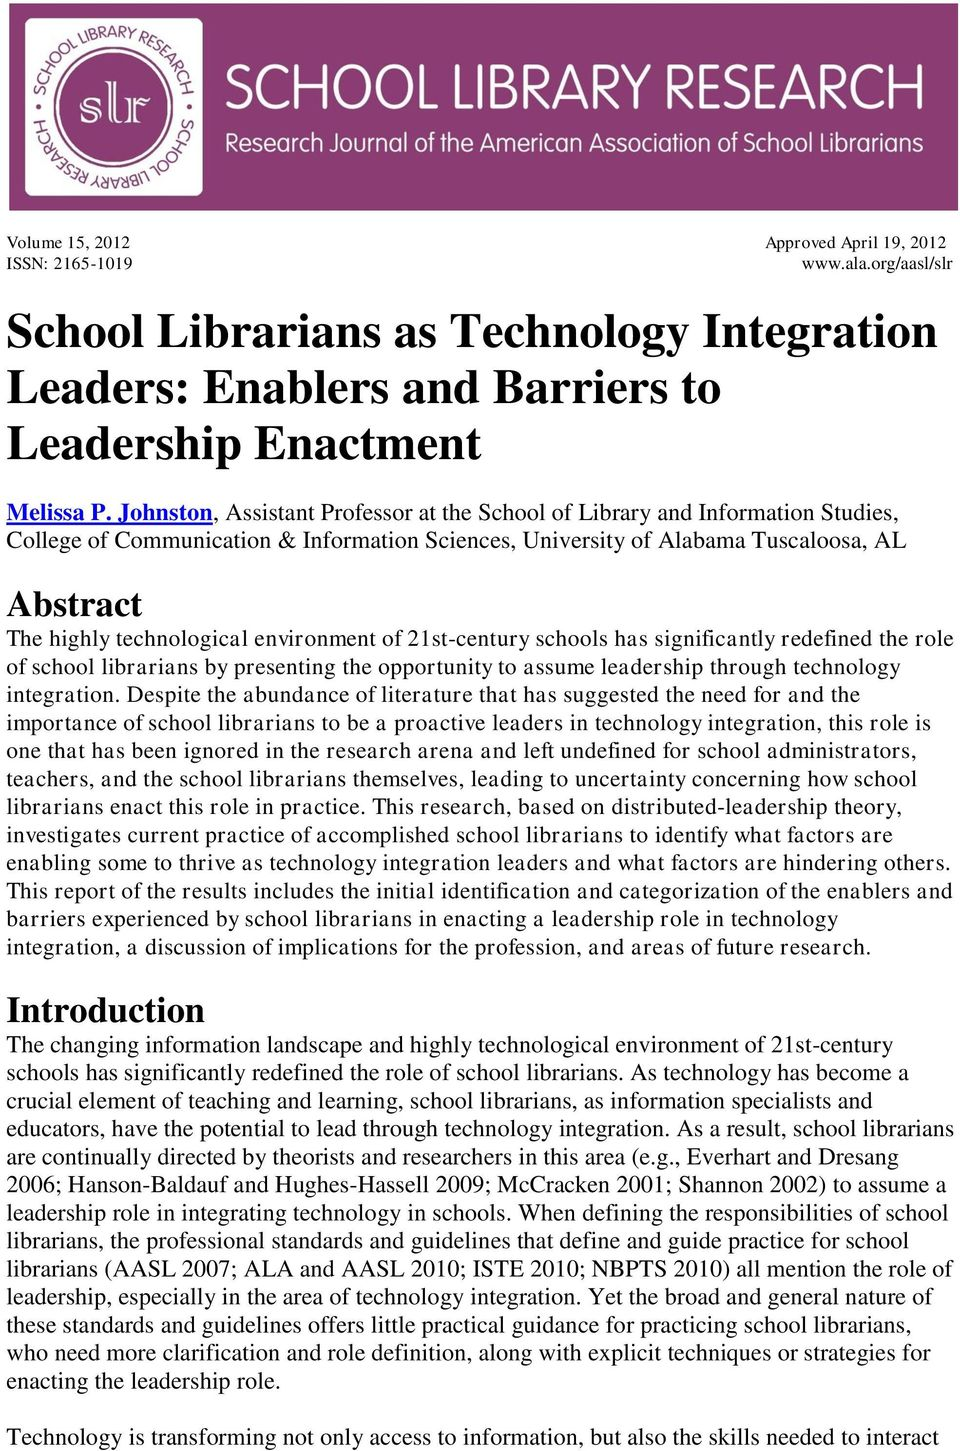 environment of 21st-century schools has significantly redefined the role of school librarians by presenting the opportunity to assume leadership through technology integration.